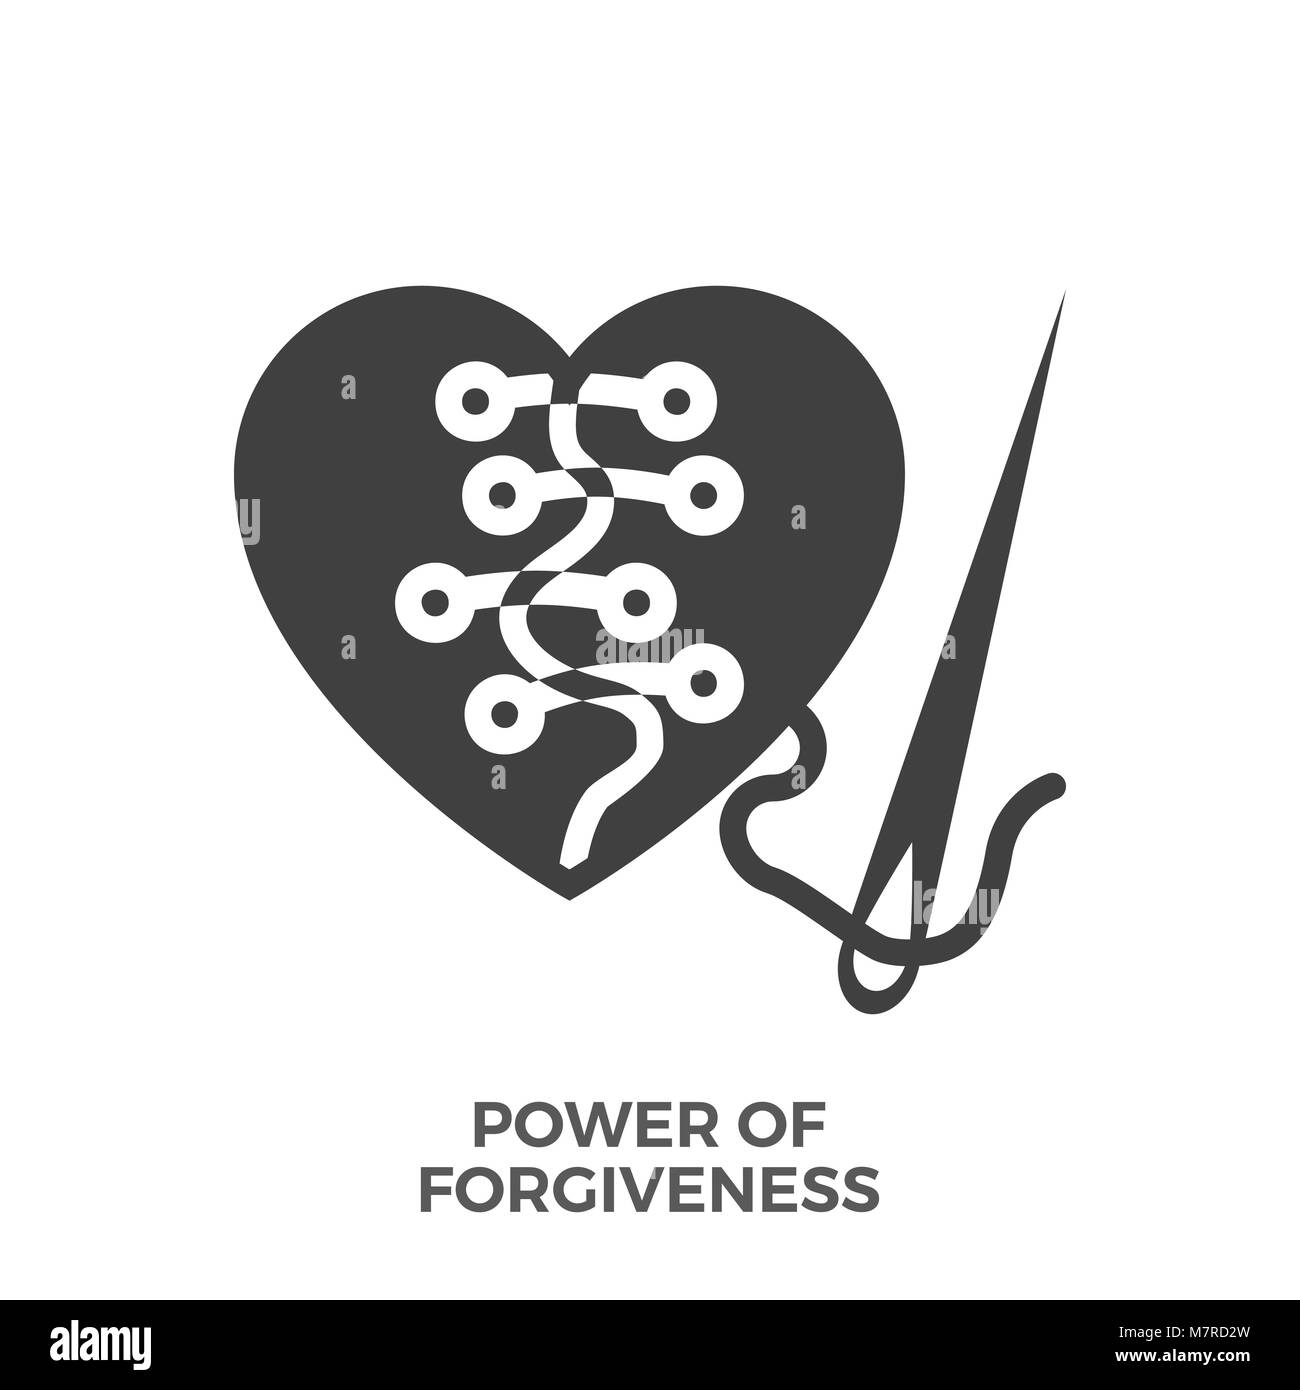 Power of Forgiveness Glyph Vector Icon. - Stock Image